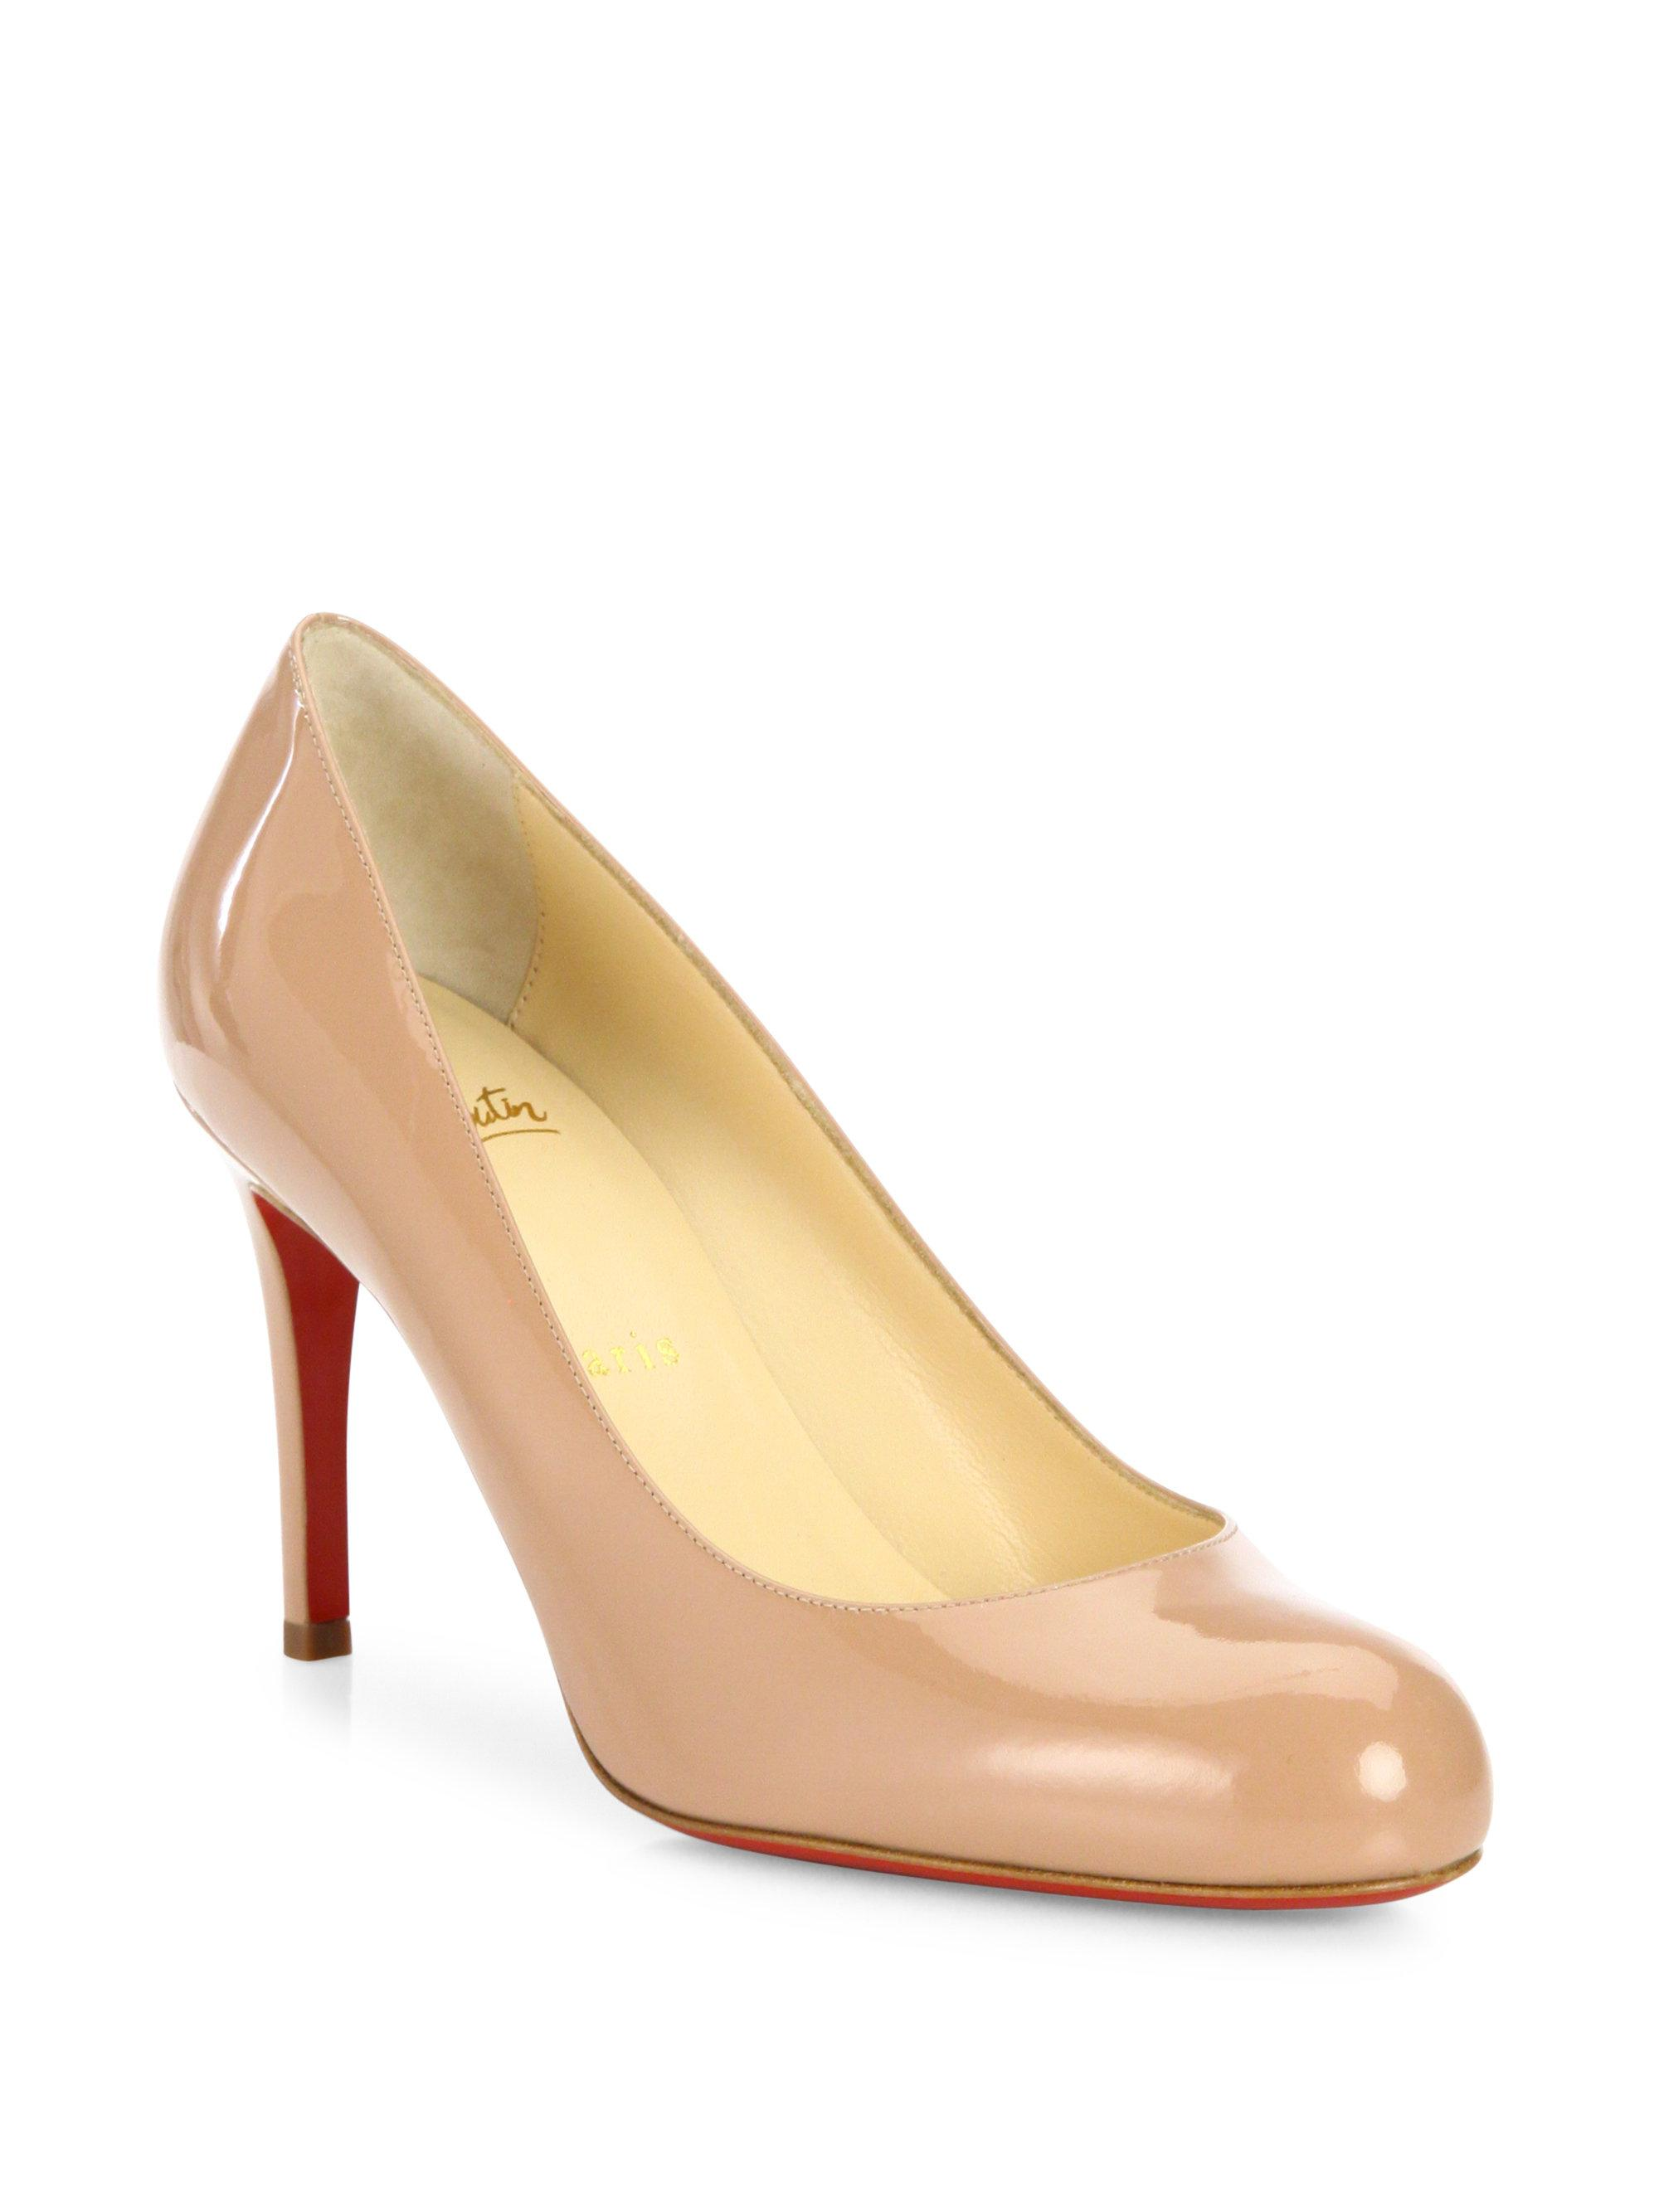 christian louboutin new simple pump 85mm patent leather platform rh takeoutburger com